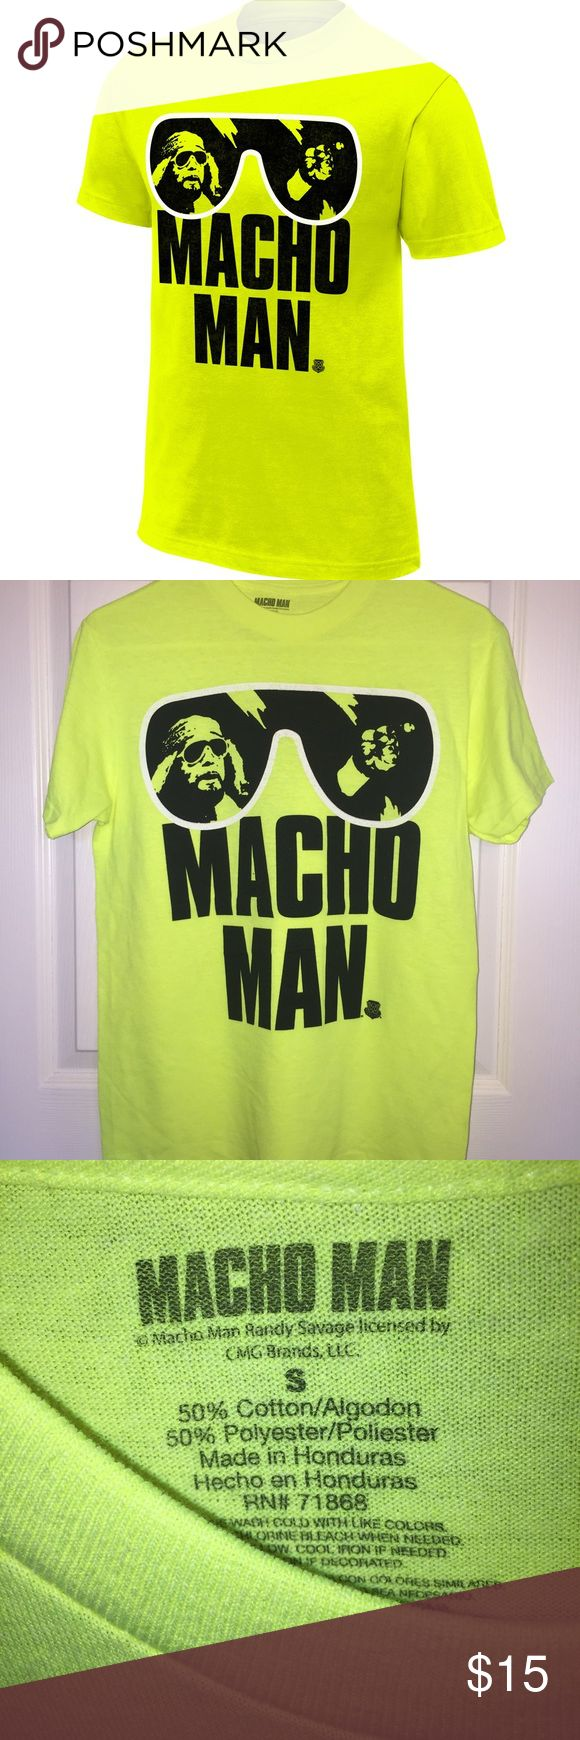 """Macho Man"" Randy Savage WWE Retro Tee - Small Greatest of all time? Greatest wrestling tee ever? Hard to argue either, so scoop this iconic ""Macho Man"" Randy Savage tee while you can!   * New * Never worn * Never came with tags * From the WWE website * Bright (almost a fluorescent yellow) * 50% cotton * 50% polyester  Take a look at everything I have for sale!   I am always adding new items!  Feel free to make an offer.   I discount purchases that are bundled!  Ooooohhh yeaaaaa! Thank you…"